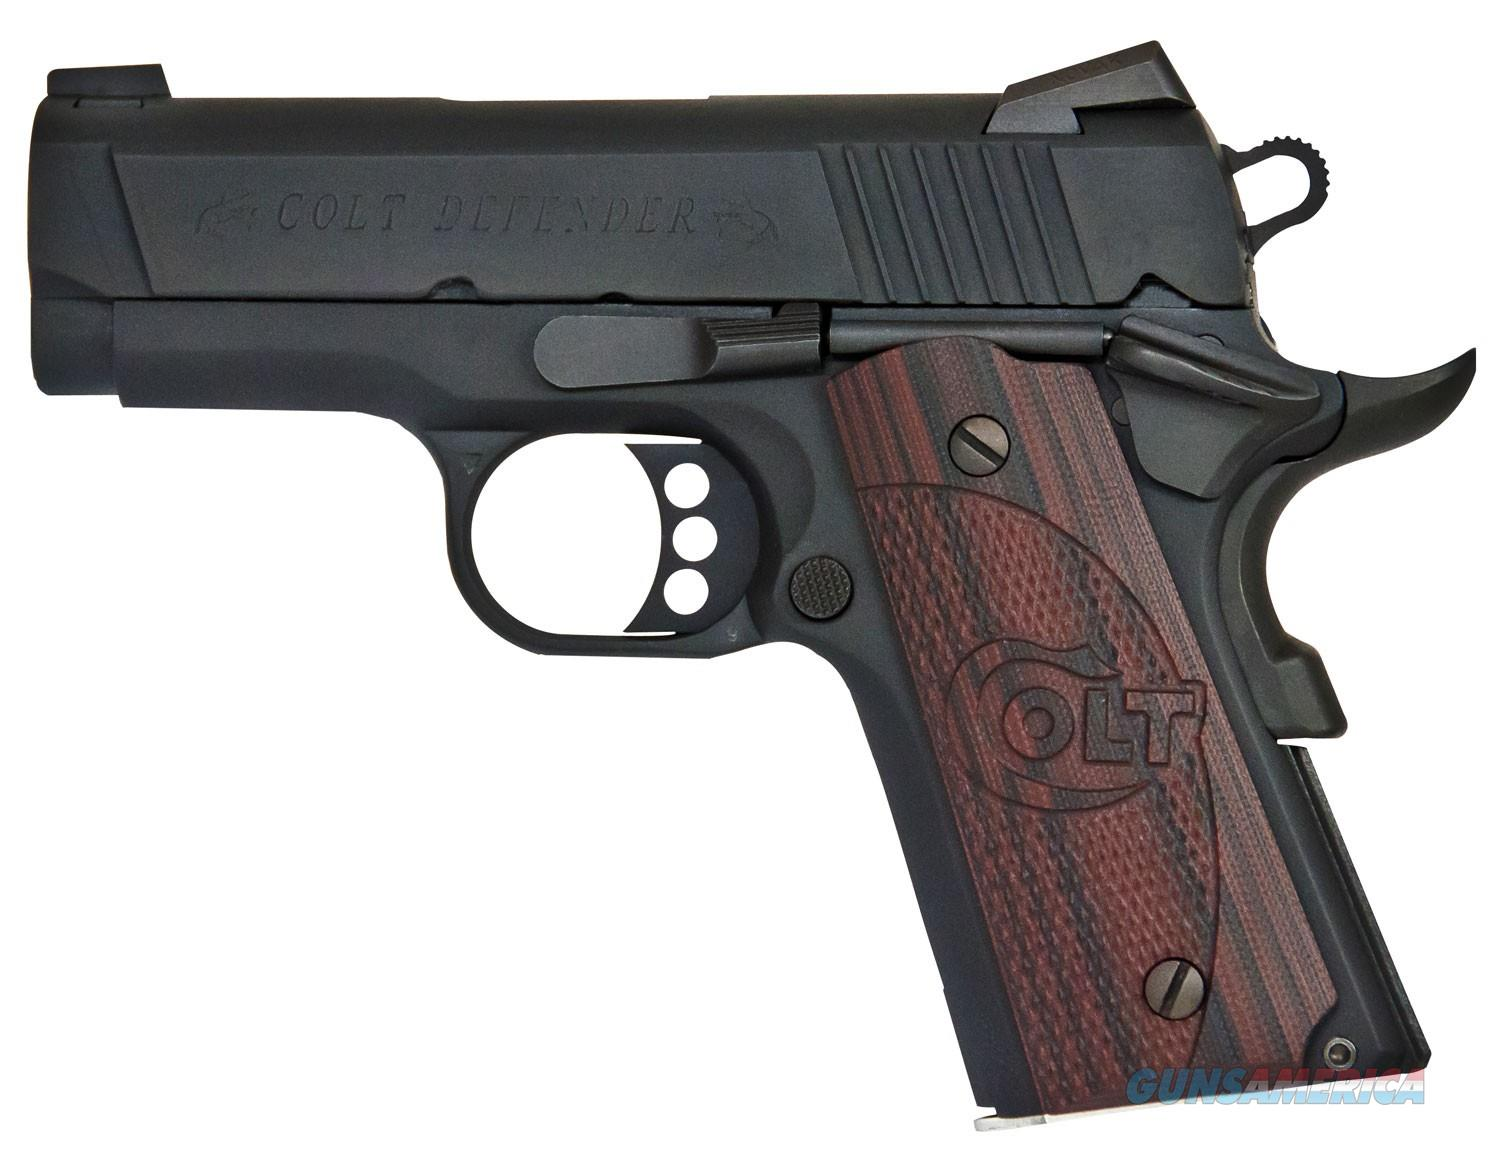 "COLT 1911 DEFENDER O7802XE 3"" 9MM 8+1 CAPACITY NEW IN BOX  Guns > Pistols > Colt Automatic Pistols (1911 & Var)"